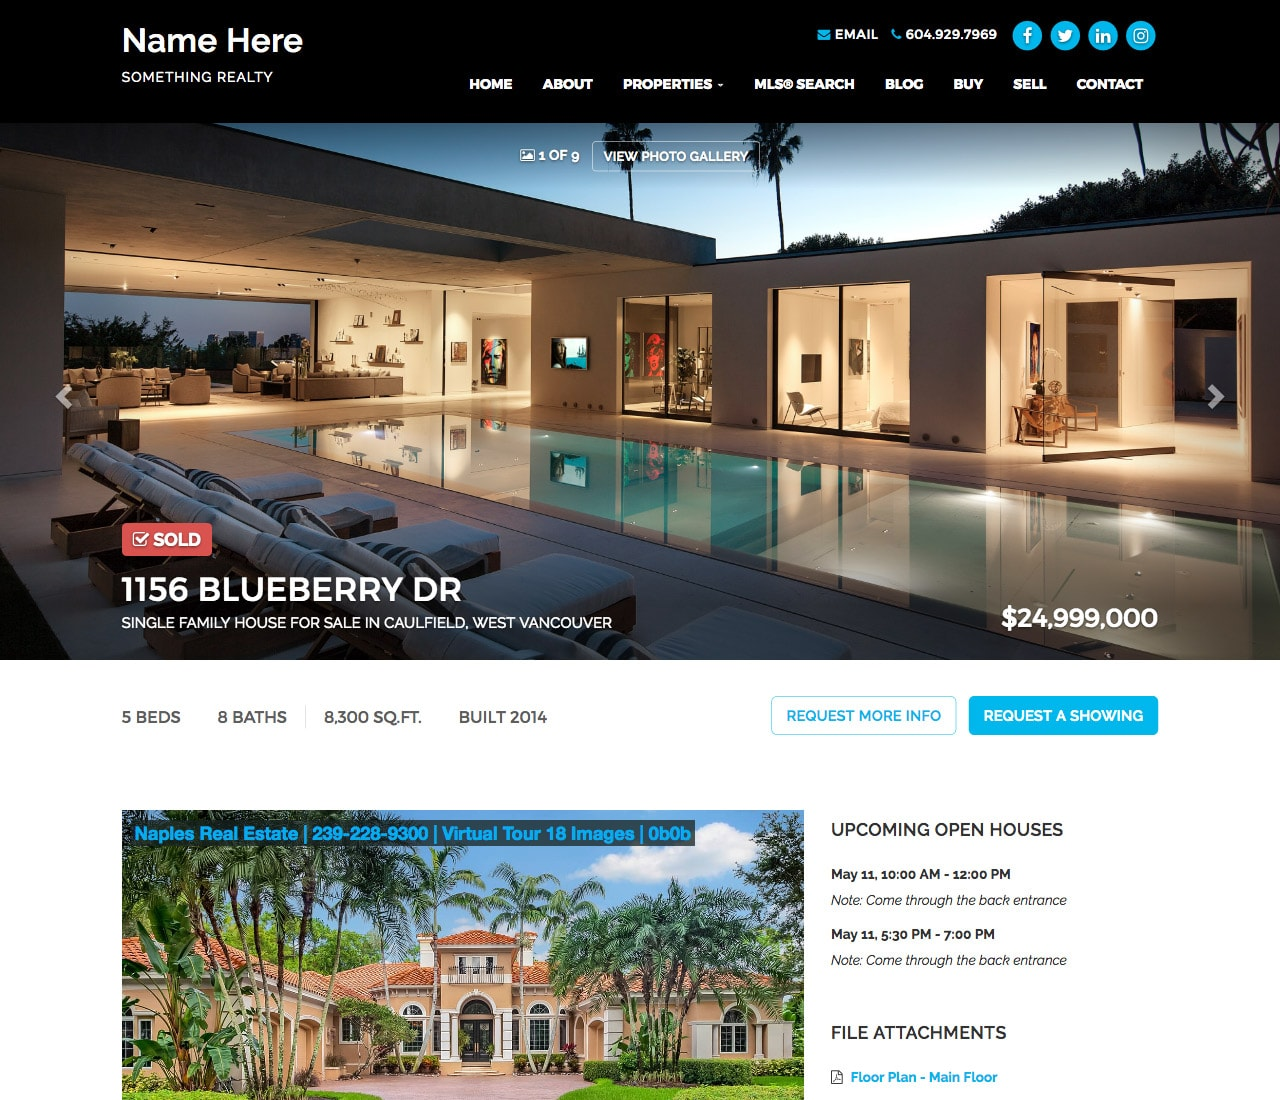 Photo-Prominent Listing Pages